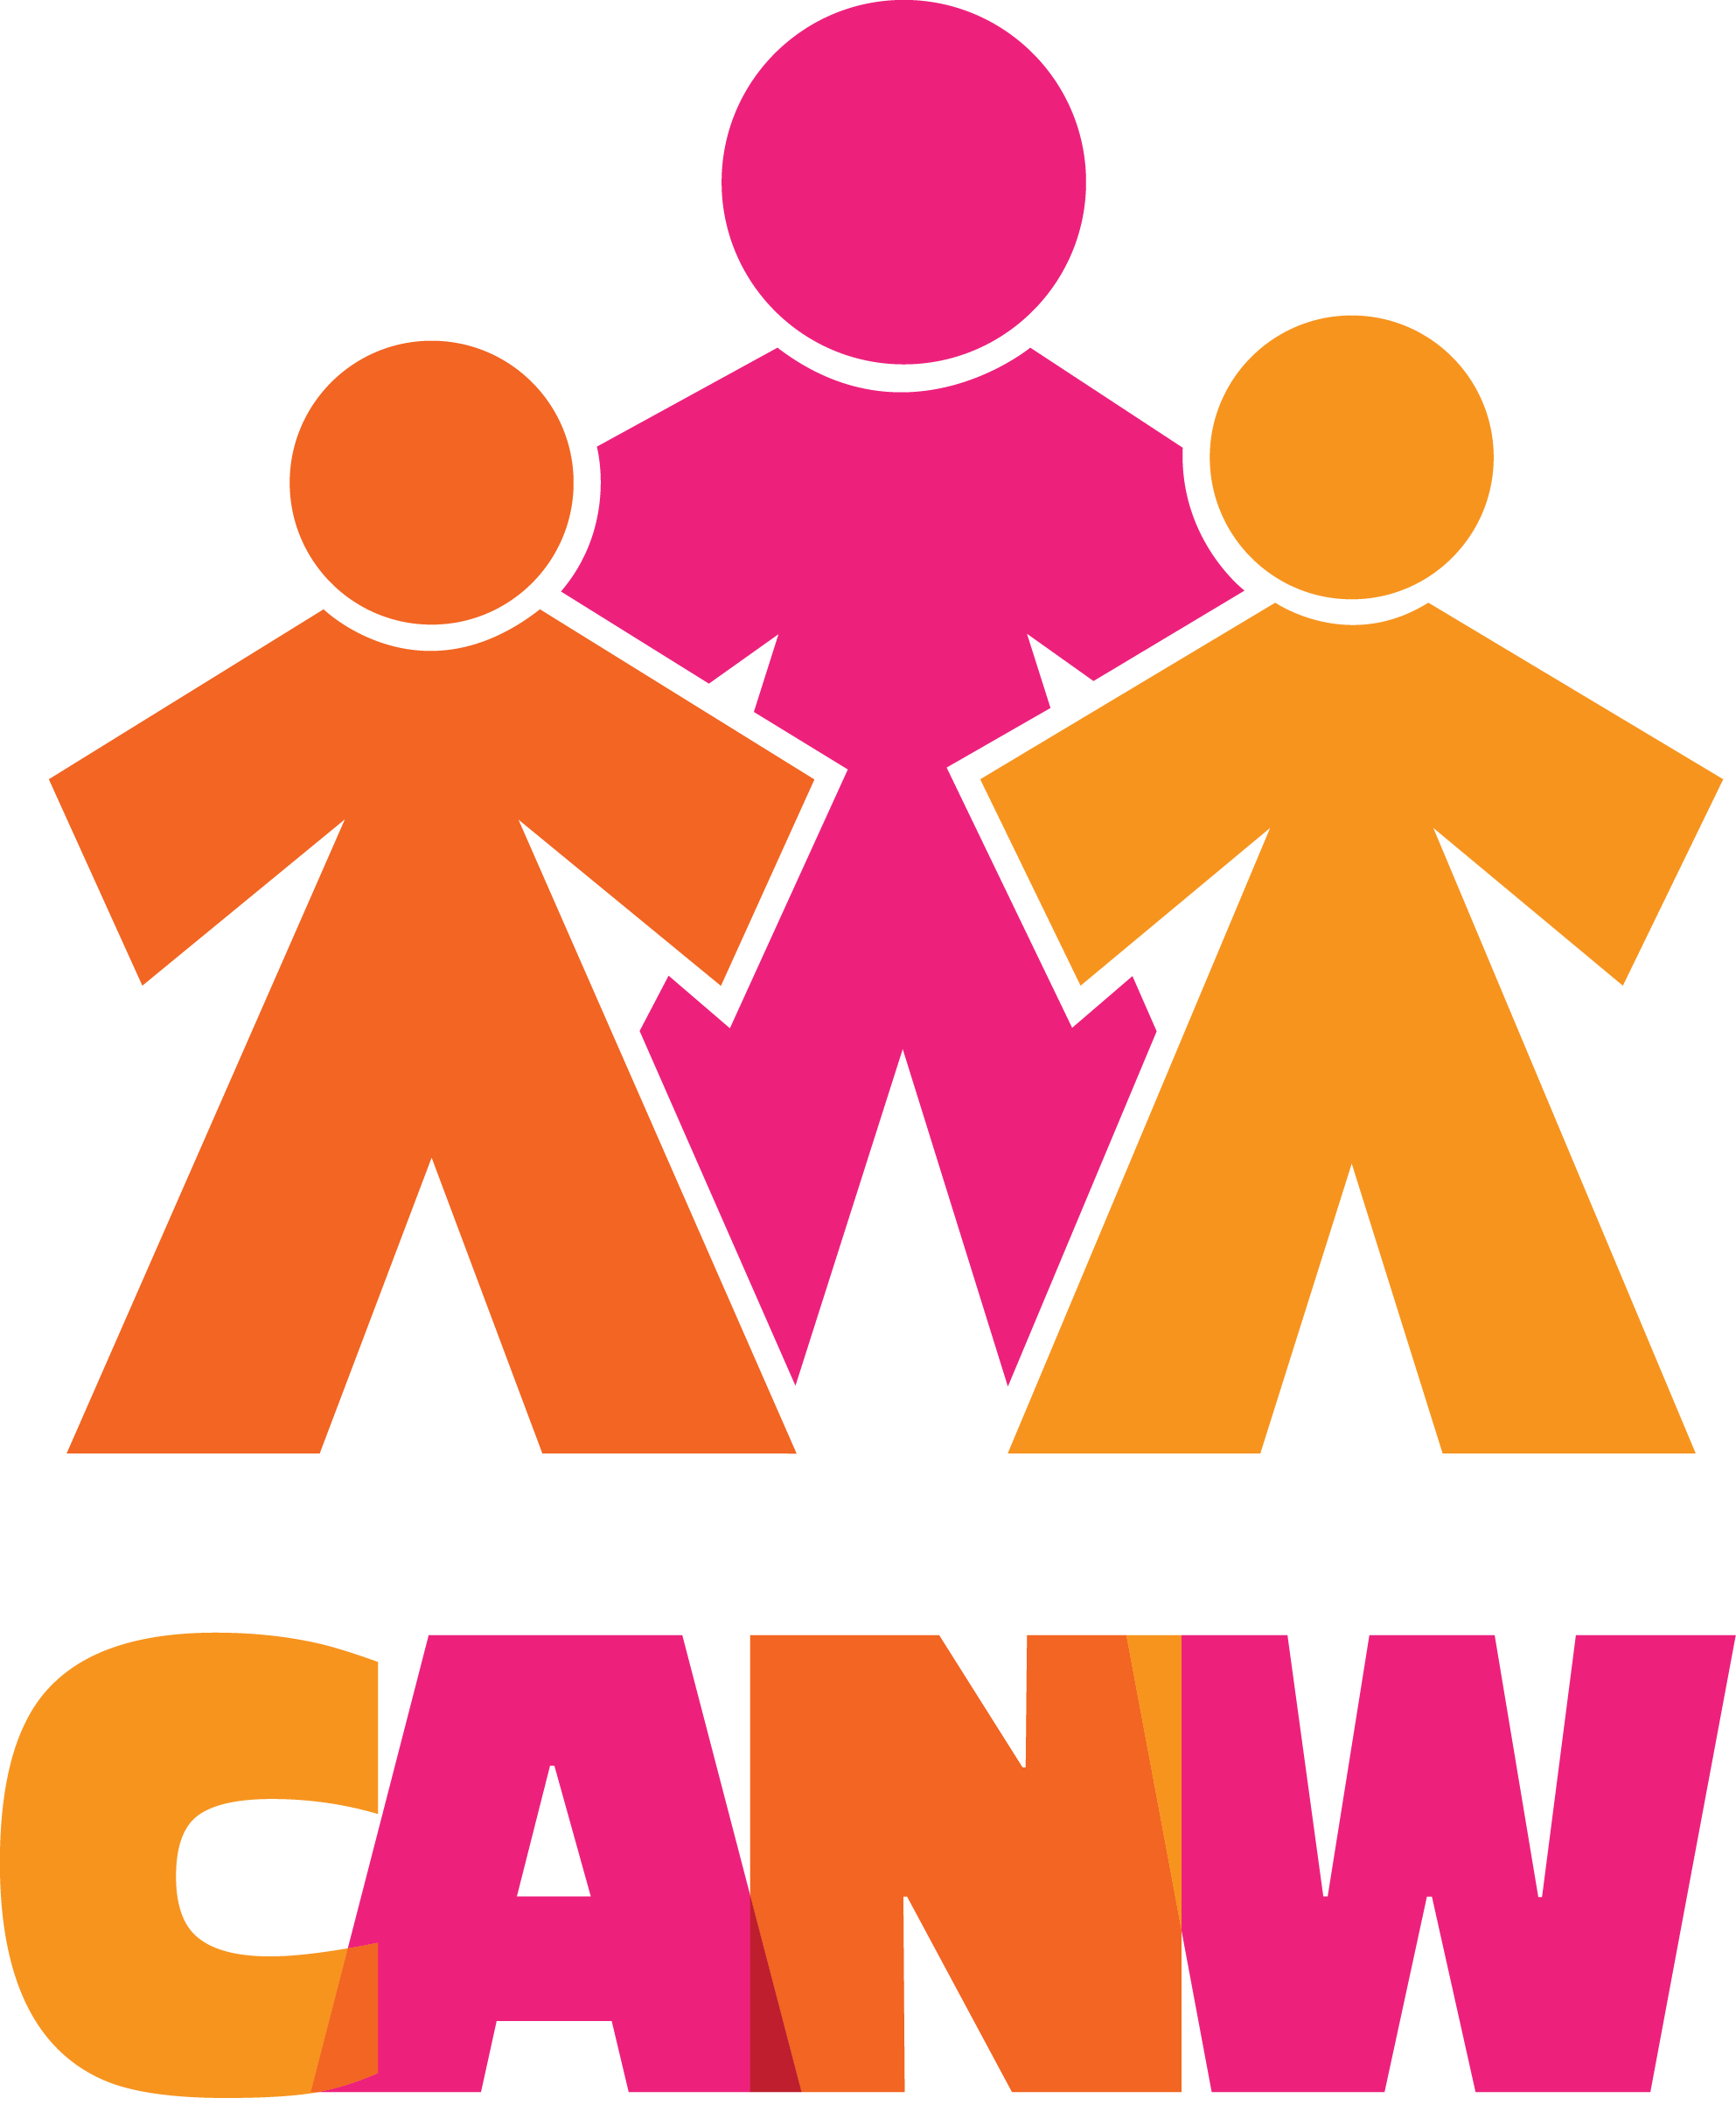 CANW_Logo14_CMYK.png